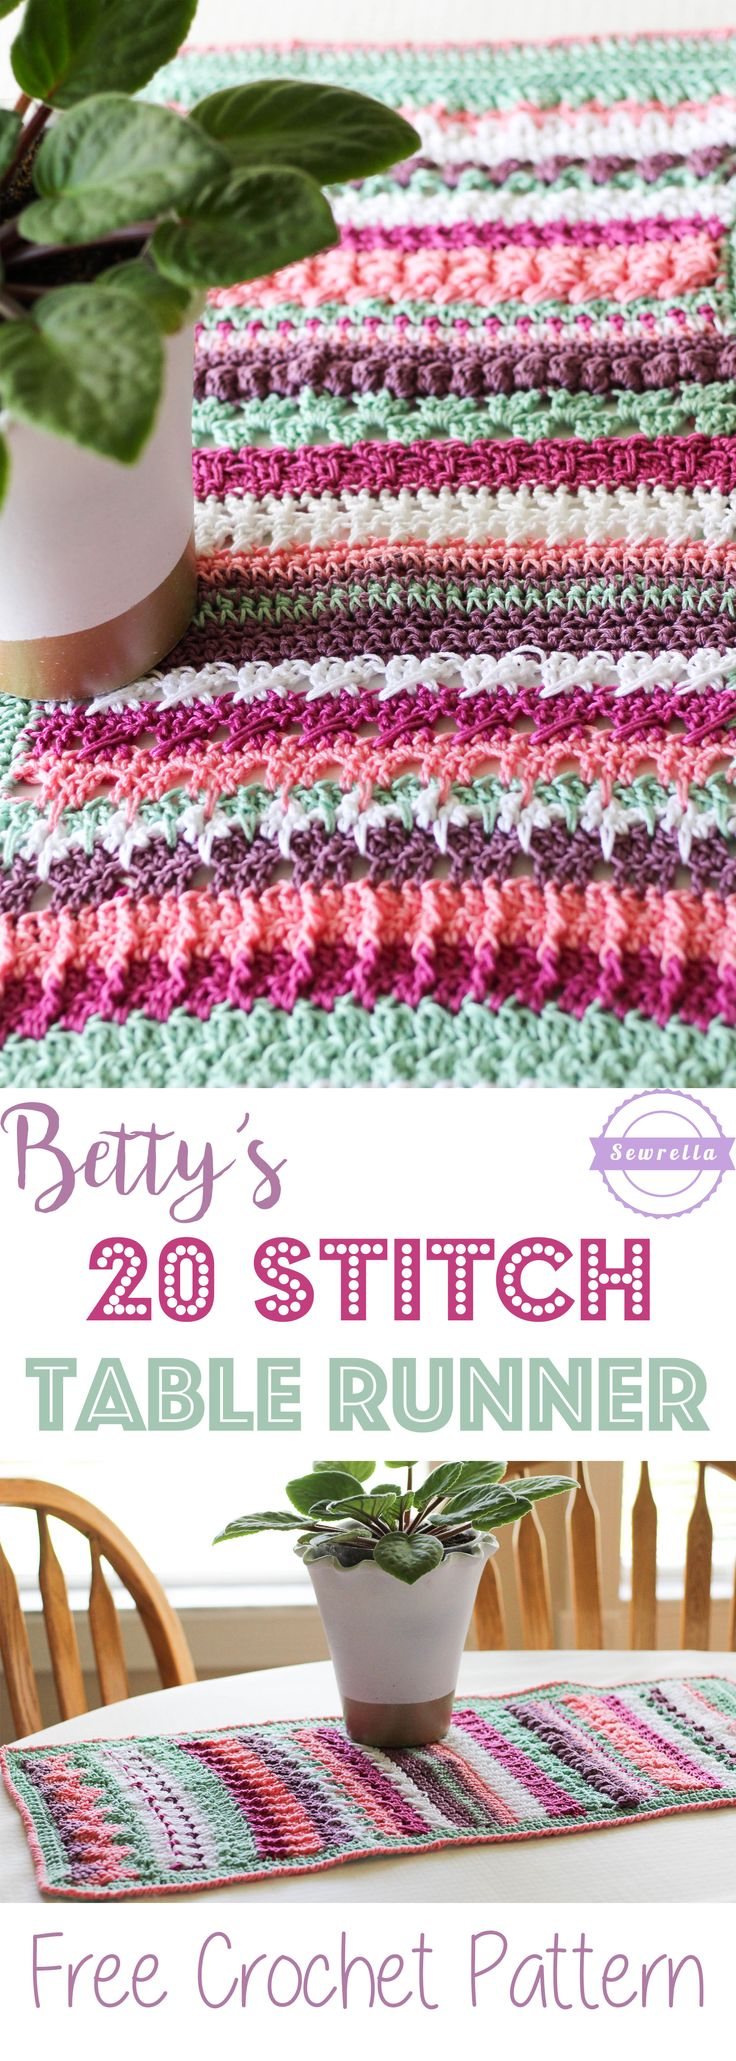 Betty's 20 Stitch Table Runner | Free Crochet Pattern from Sewrella